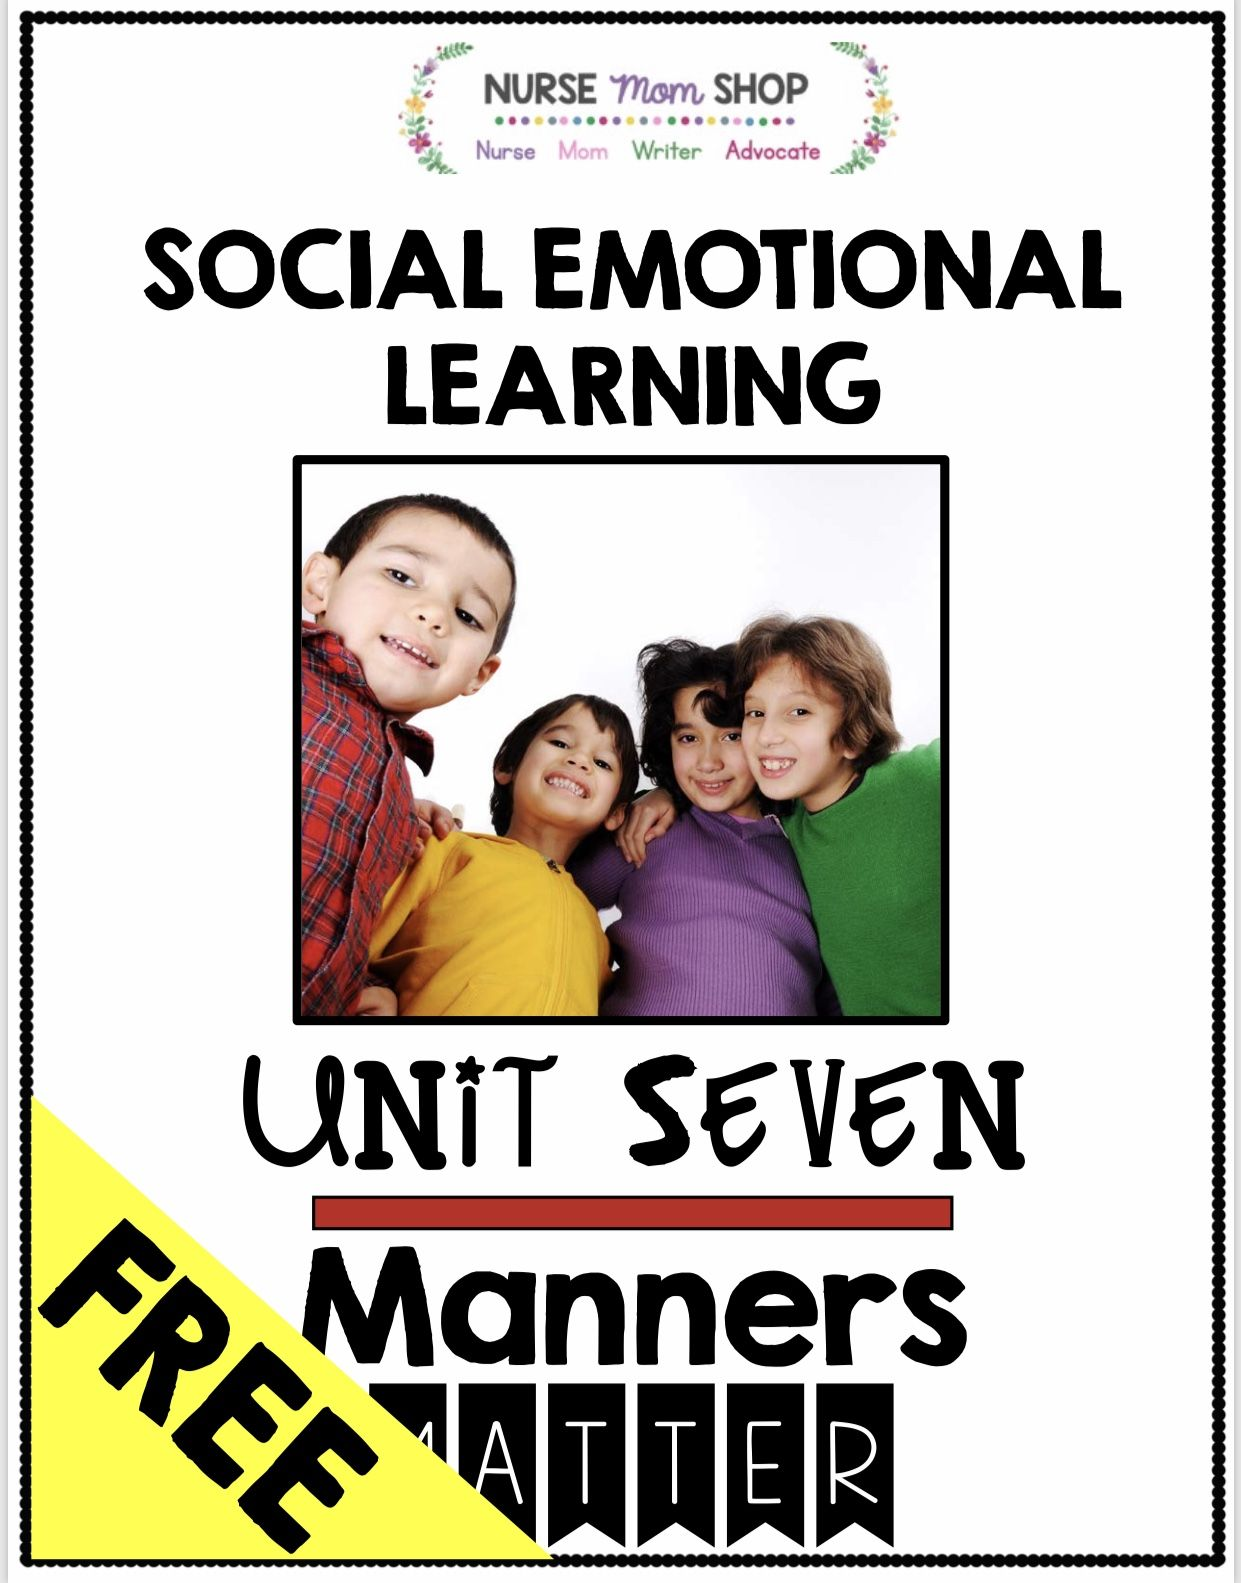 Freebie Manners Matter With Images